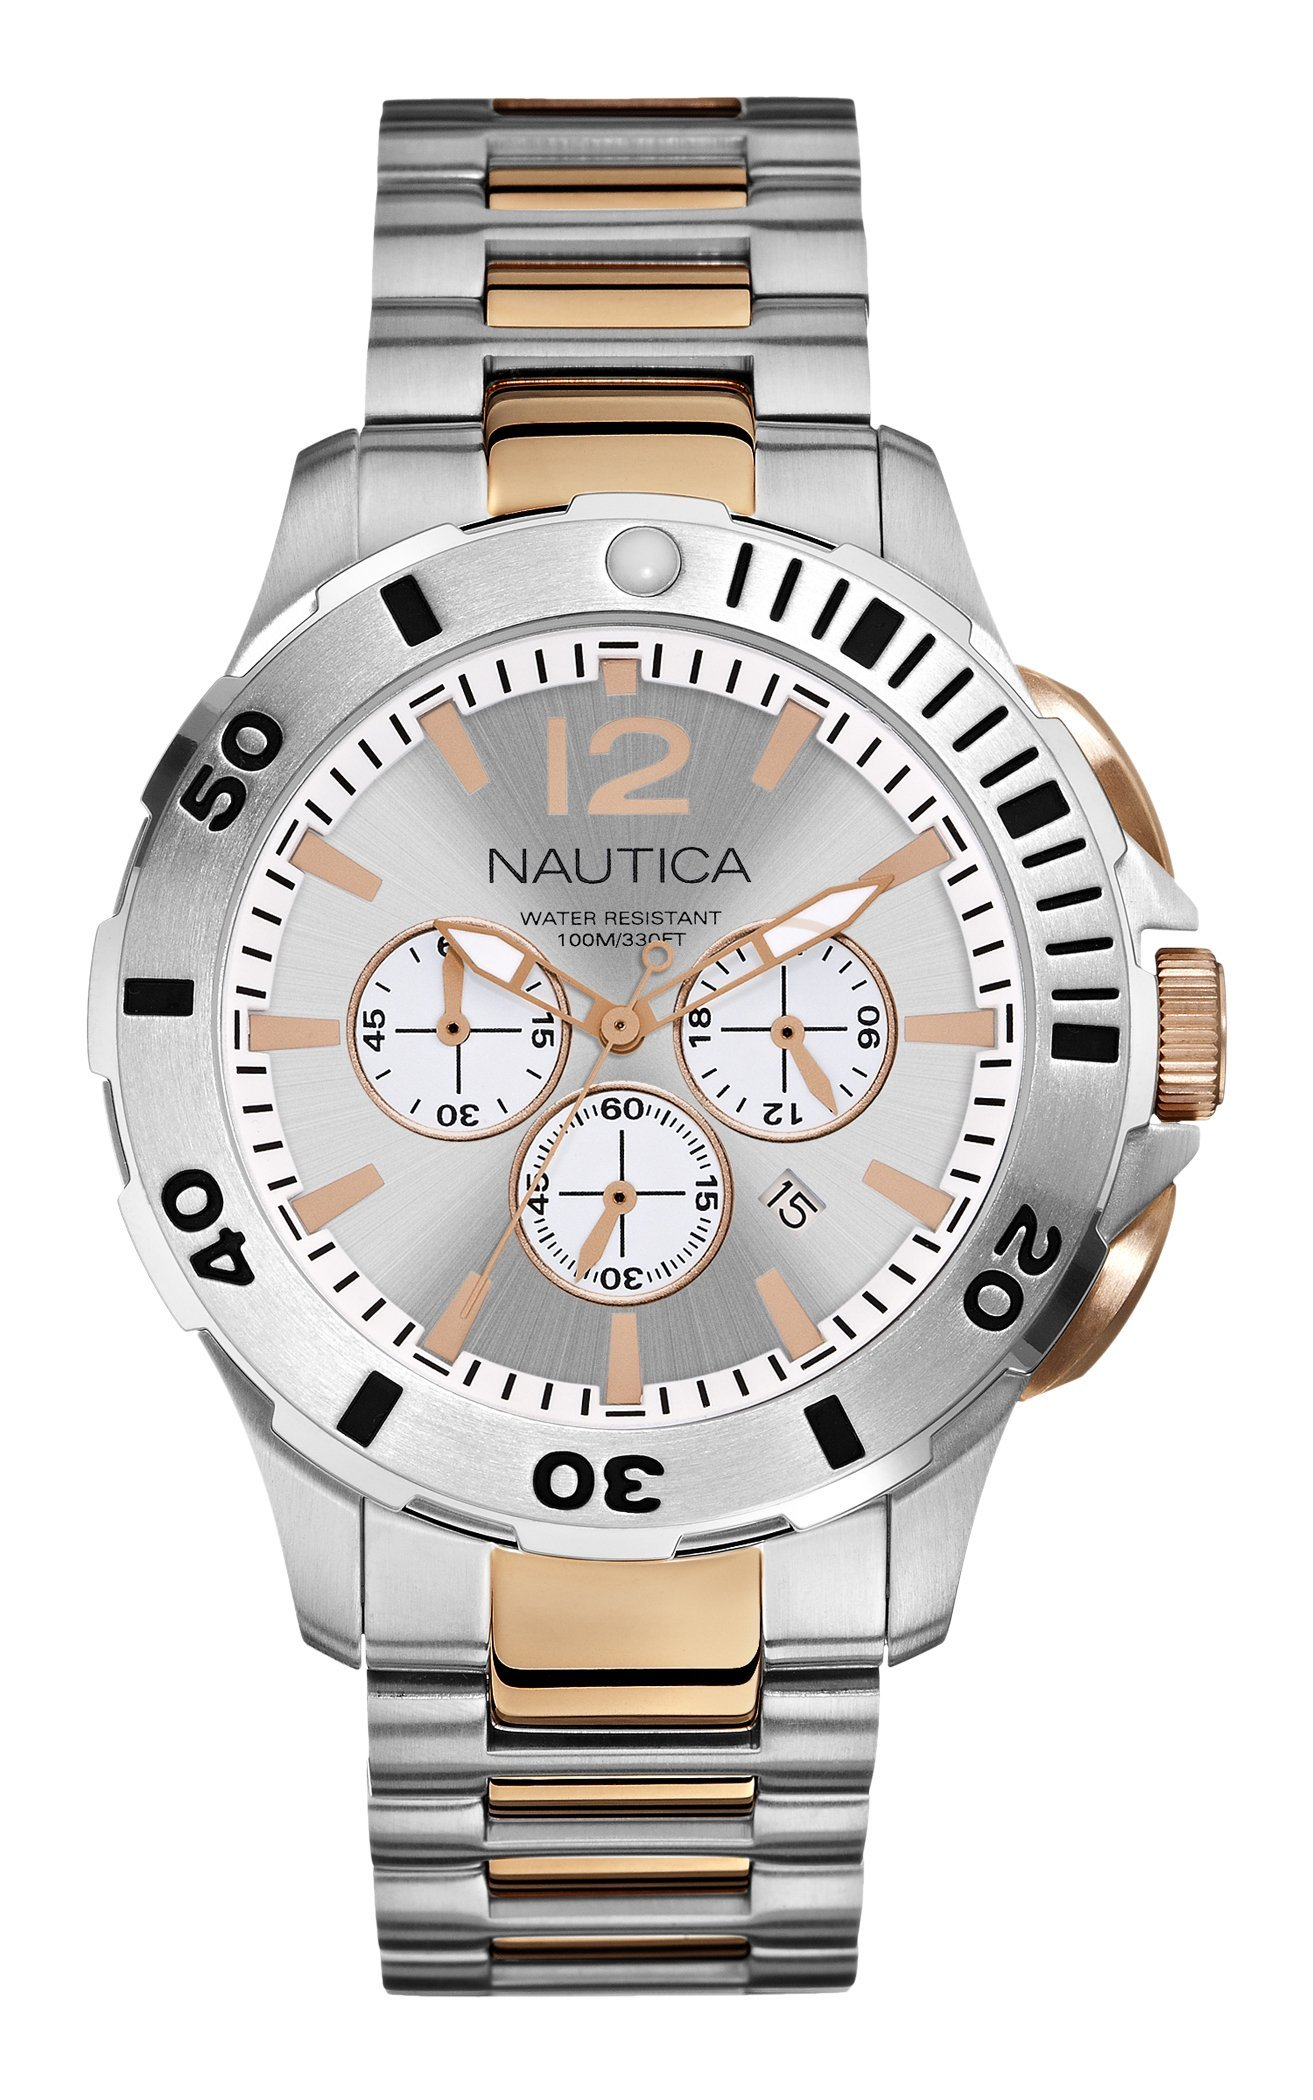 Nautica Men's N27525G Bfd 101 Dive Style Chrono Watch by 01TheOne